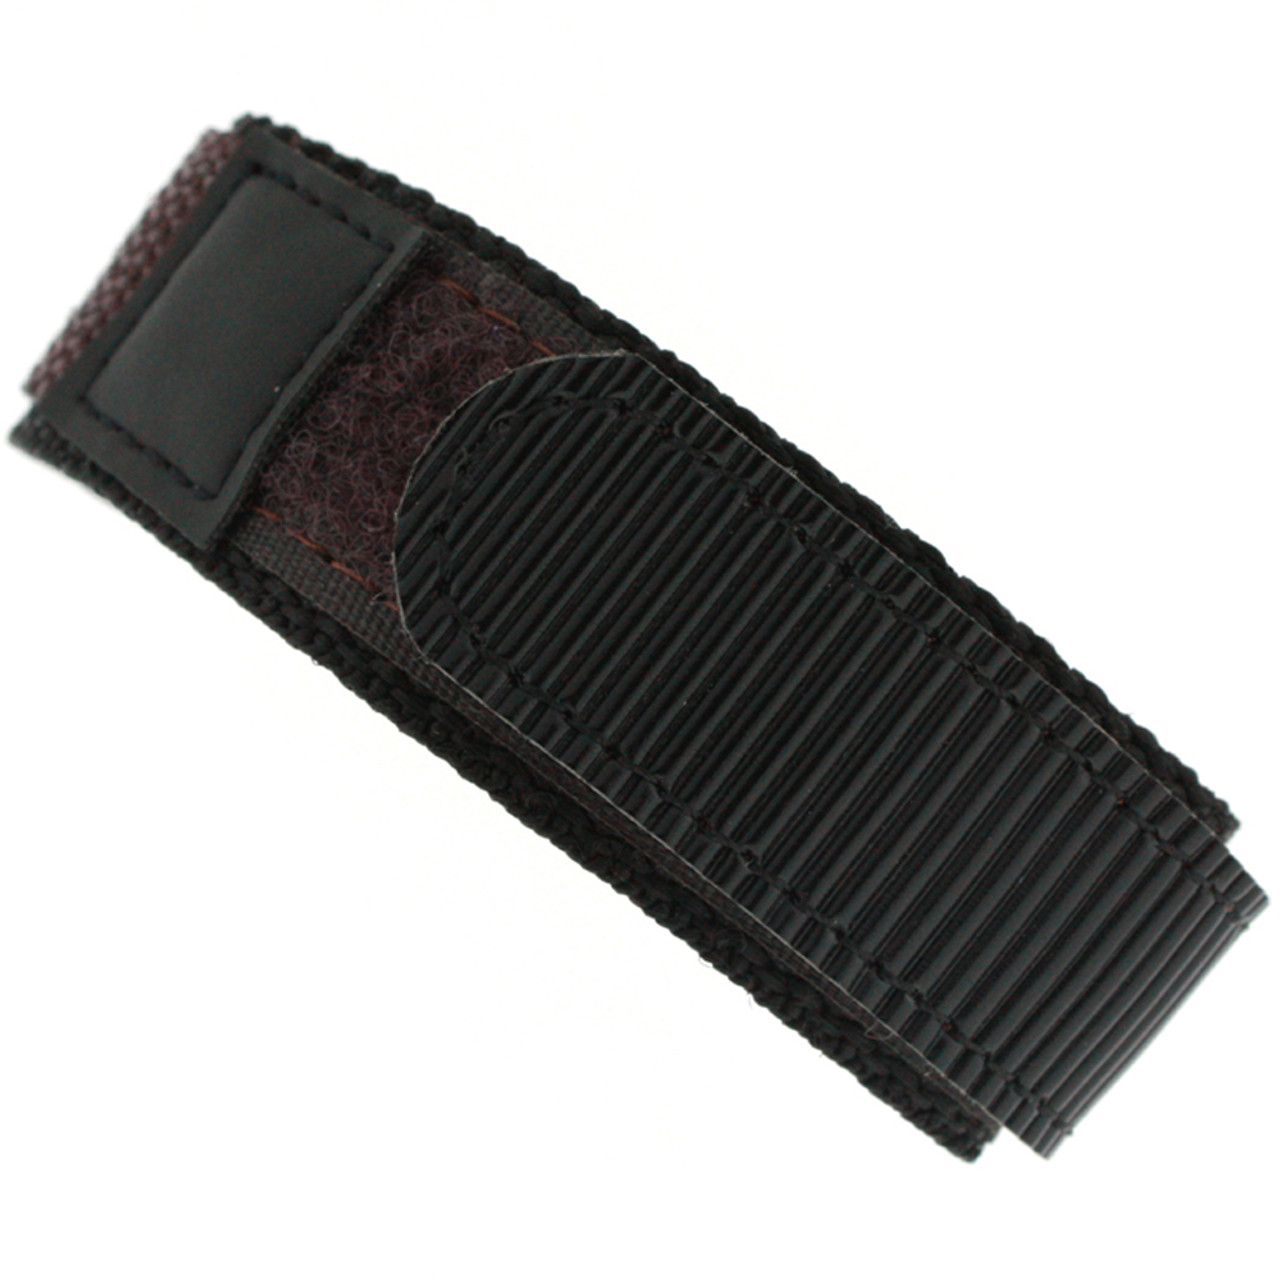 60f748bb8 18mm Velcro Watch Band   18mm Black Brown Contrast Sport Strap   18mm Sport  Watch Band